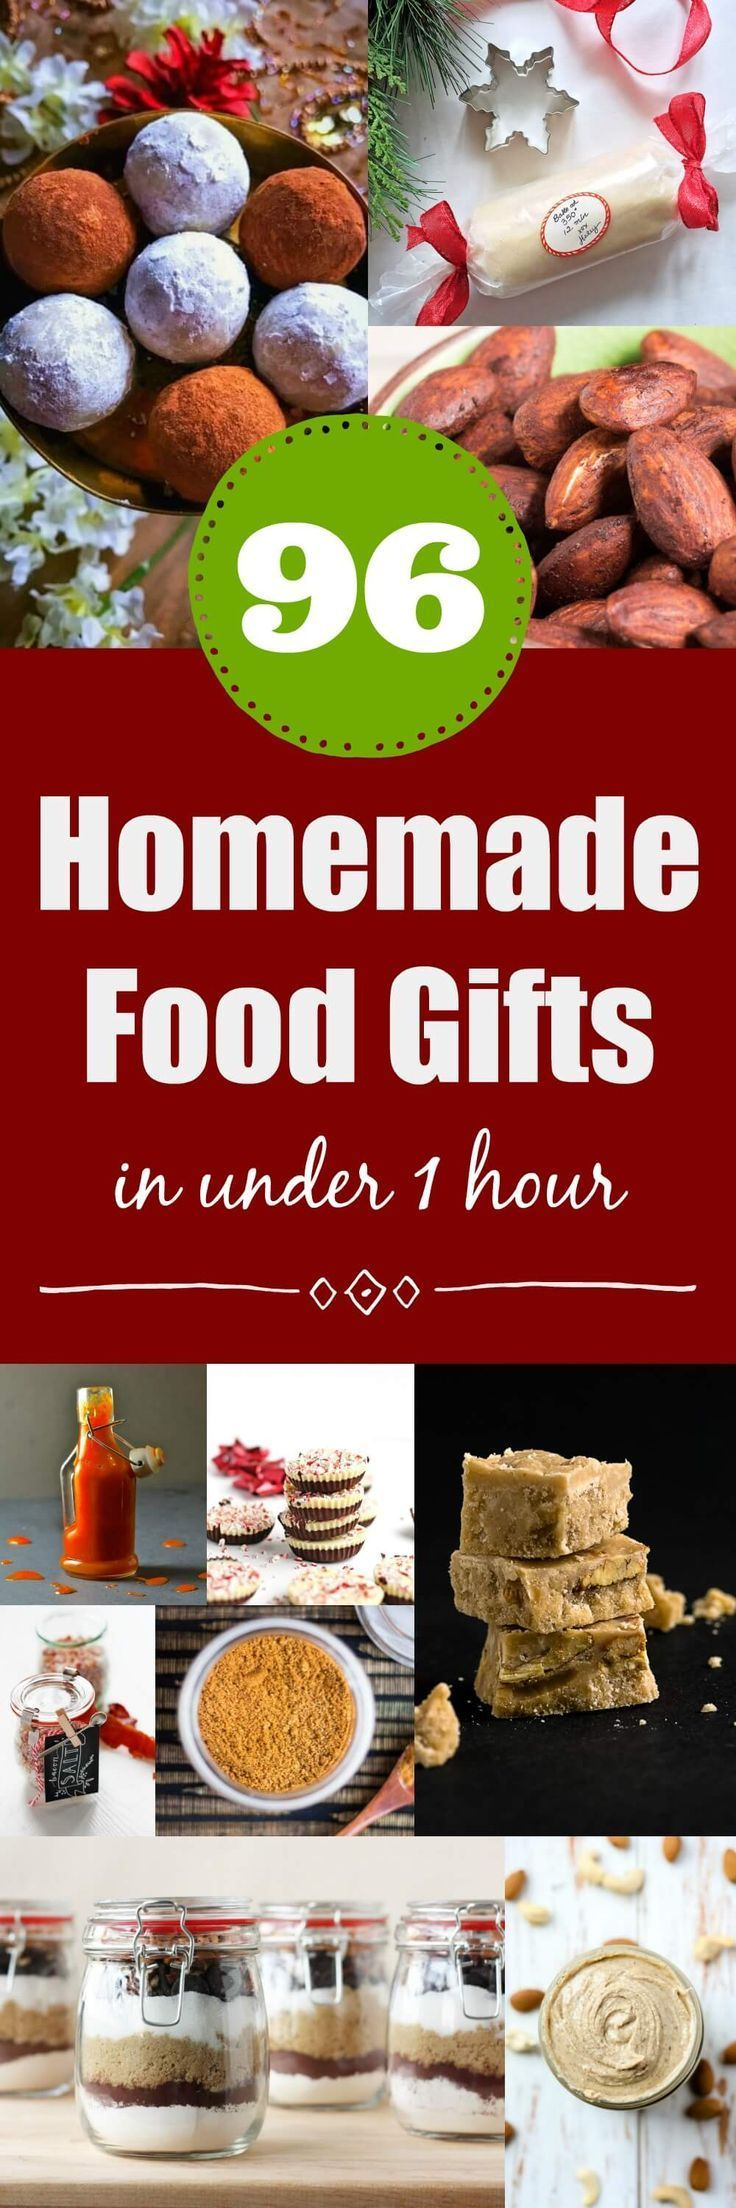 A bumper list, including baking mixes, fudges, truffles, nuts & even giftable cookie dough, for every food lover on your list. #gifts #foodgifts #thecookspyjamas #foodgift #giftideas #Christmasgifts #Christmas